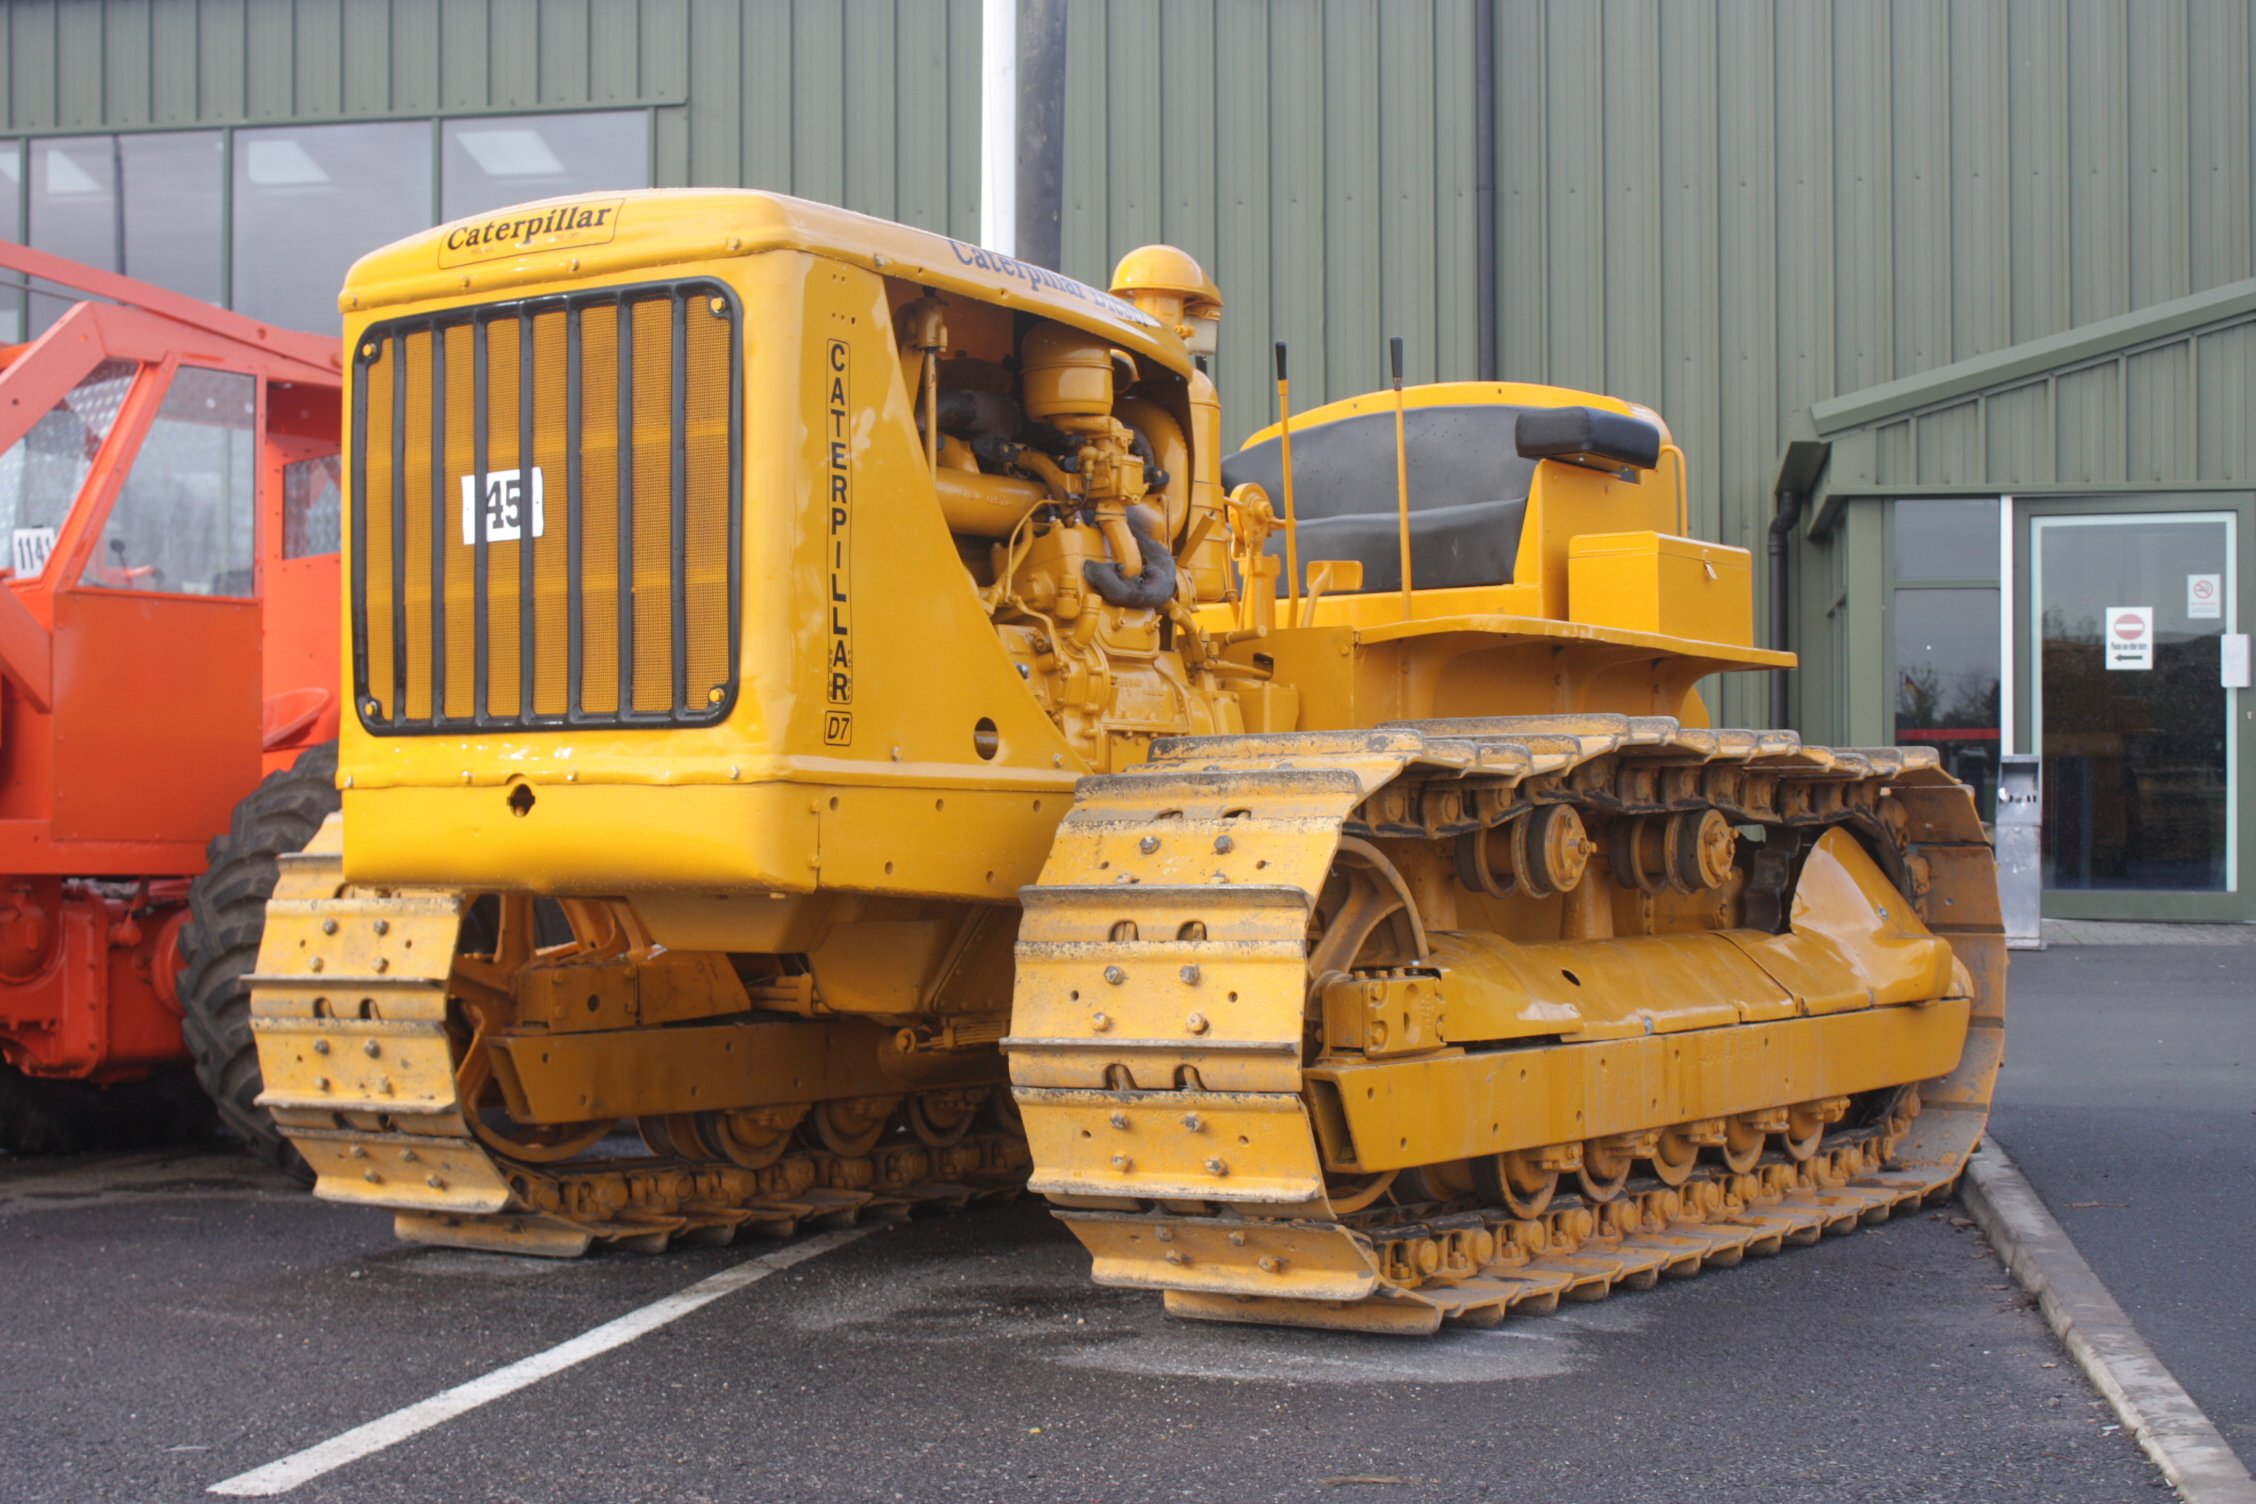 Caterpillar D7 Specs Photos Videos And More On